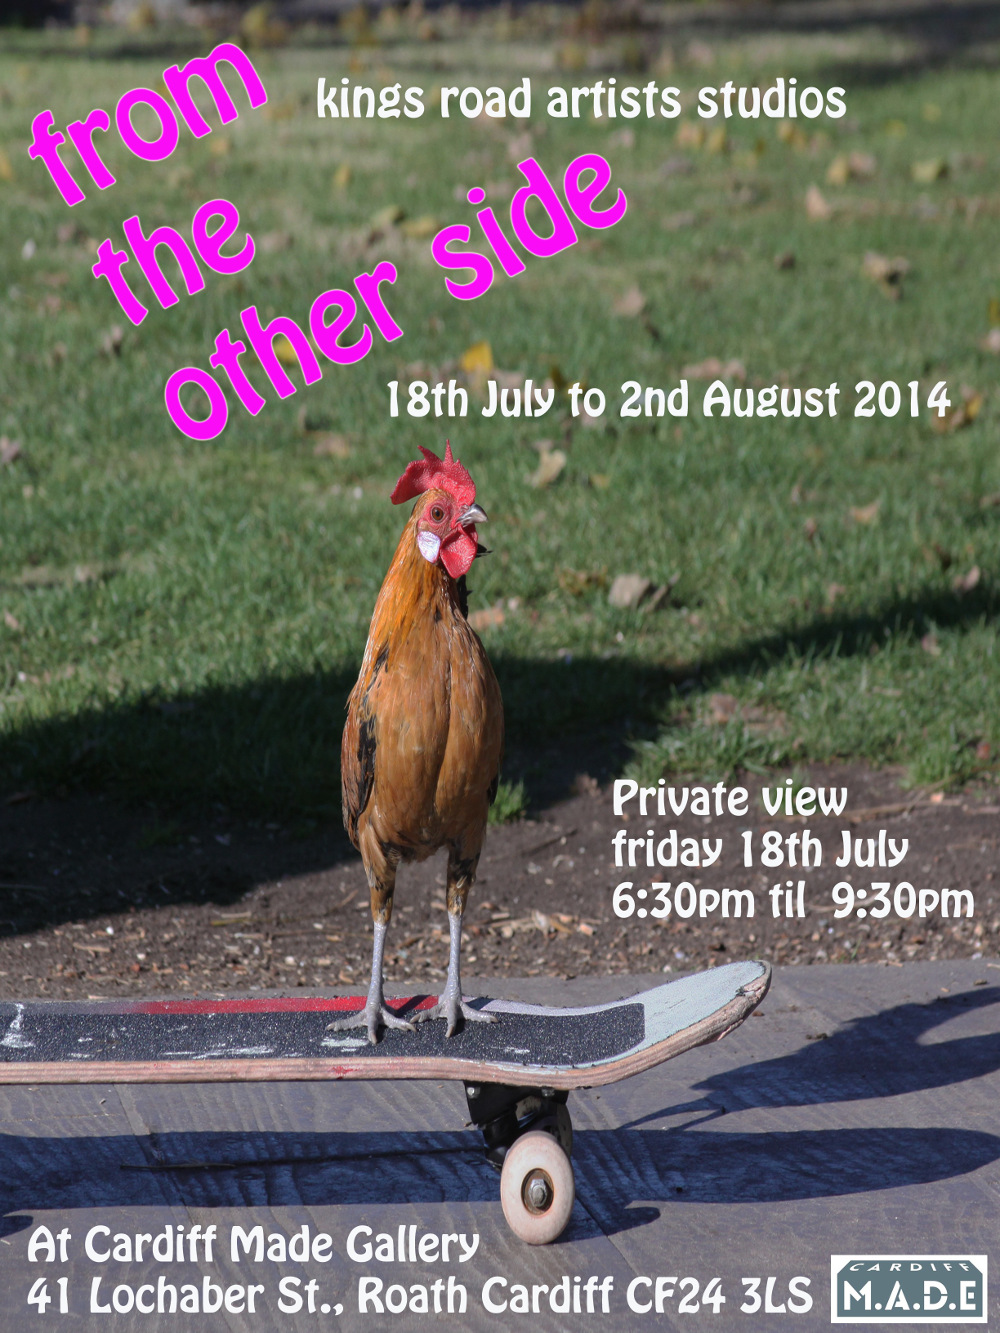 From the other side exhibition